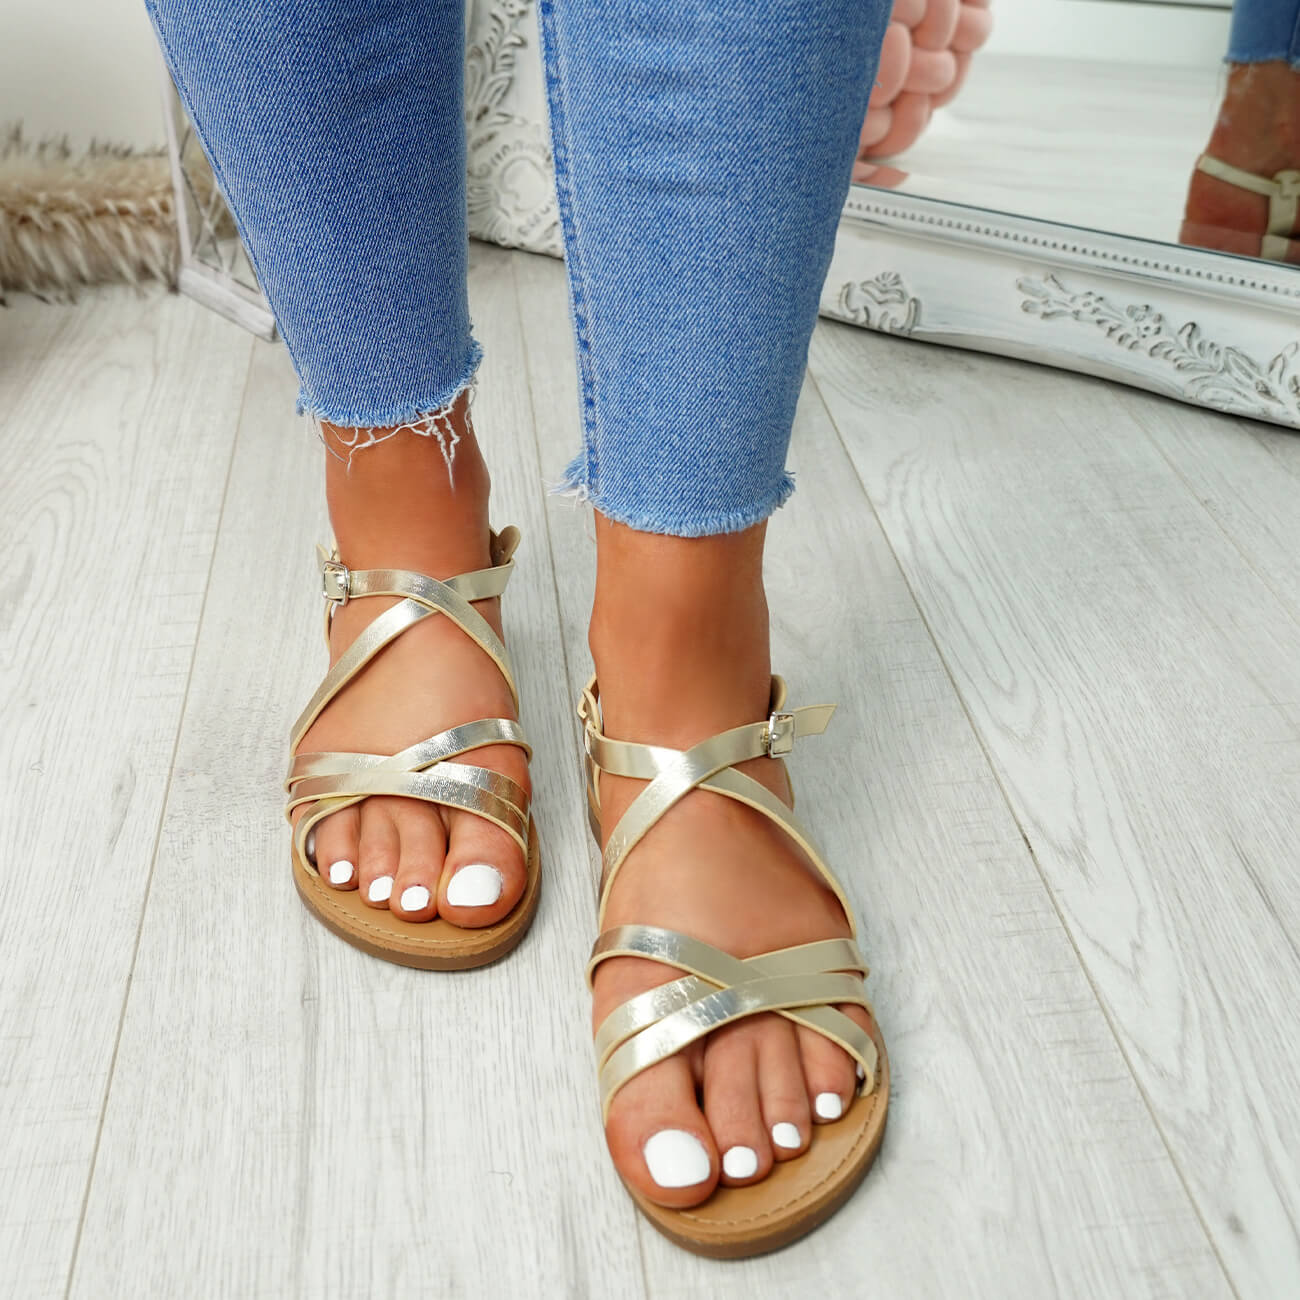 WOMENS-LADIES-ANKLE-STRAP-PEEP-TOE-BUCKLE-FLAT-SANDALS-SUMMER-CASUAL-SHOES thumbnail 20